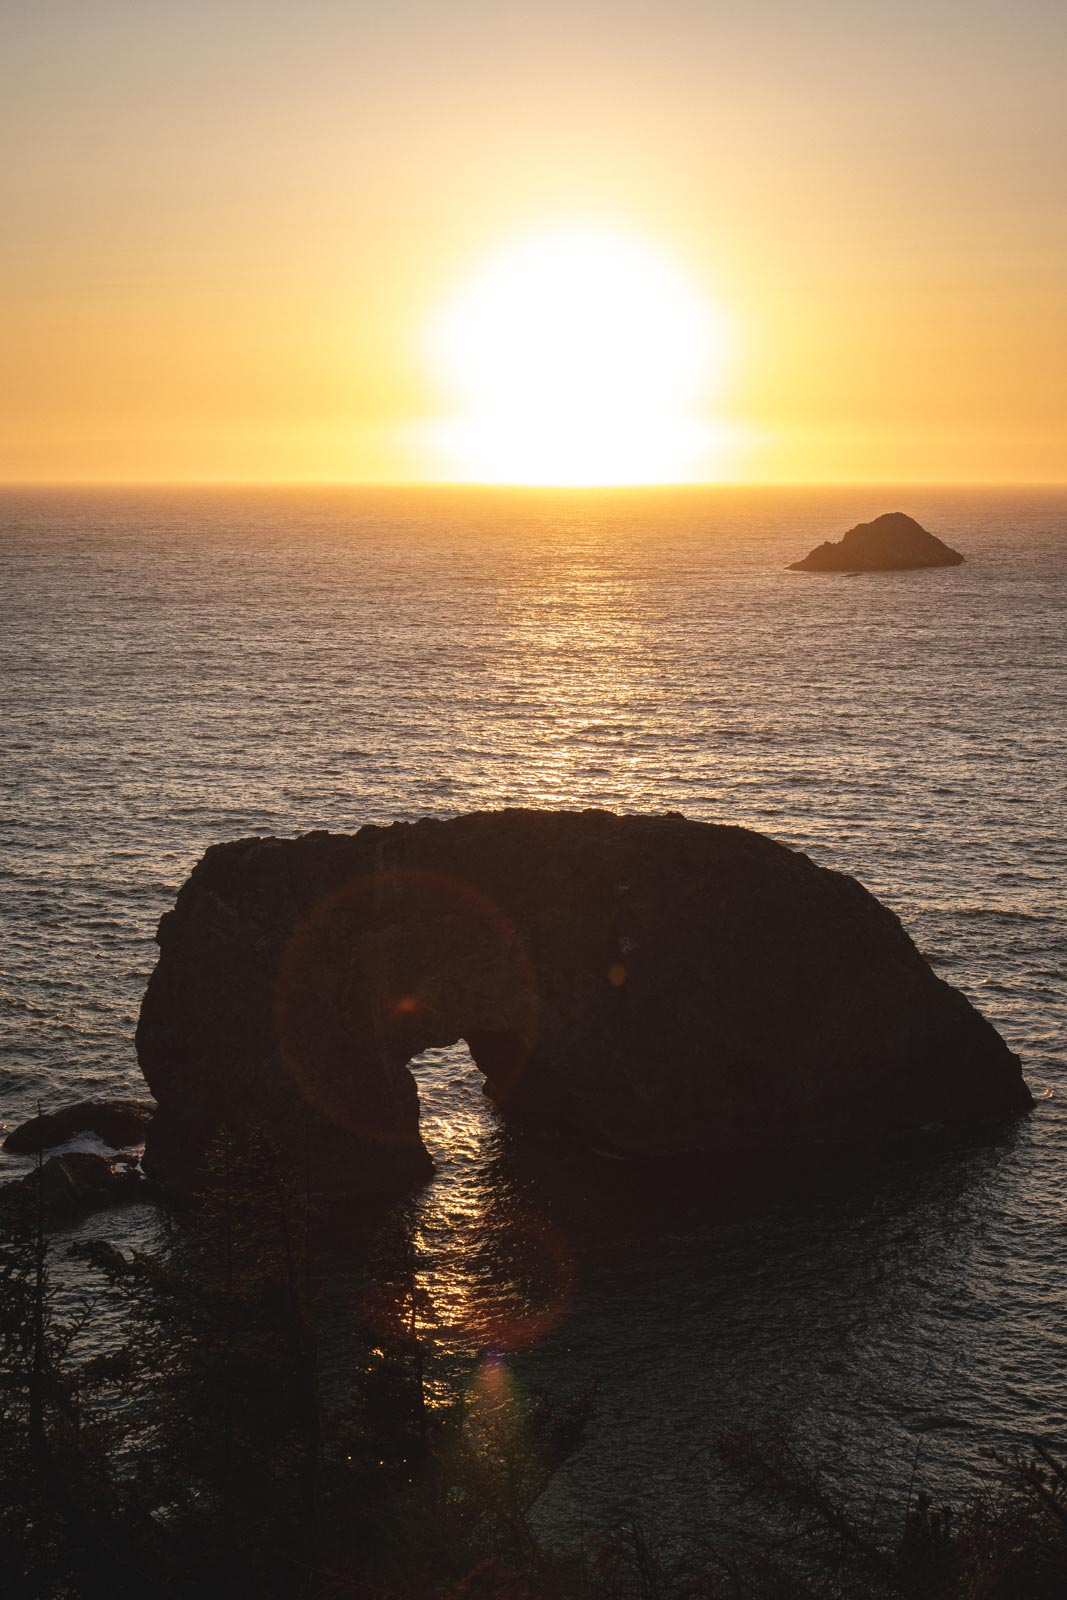 Sunsetting at the Arch Rock